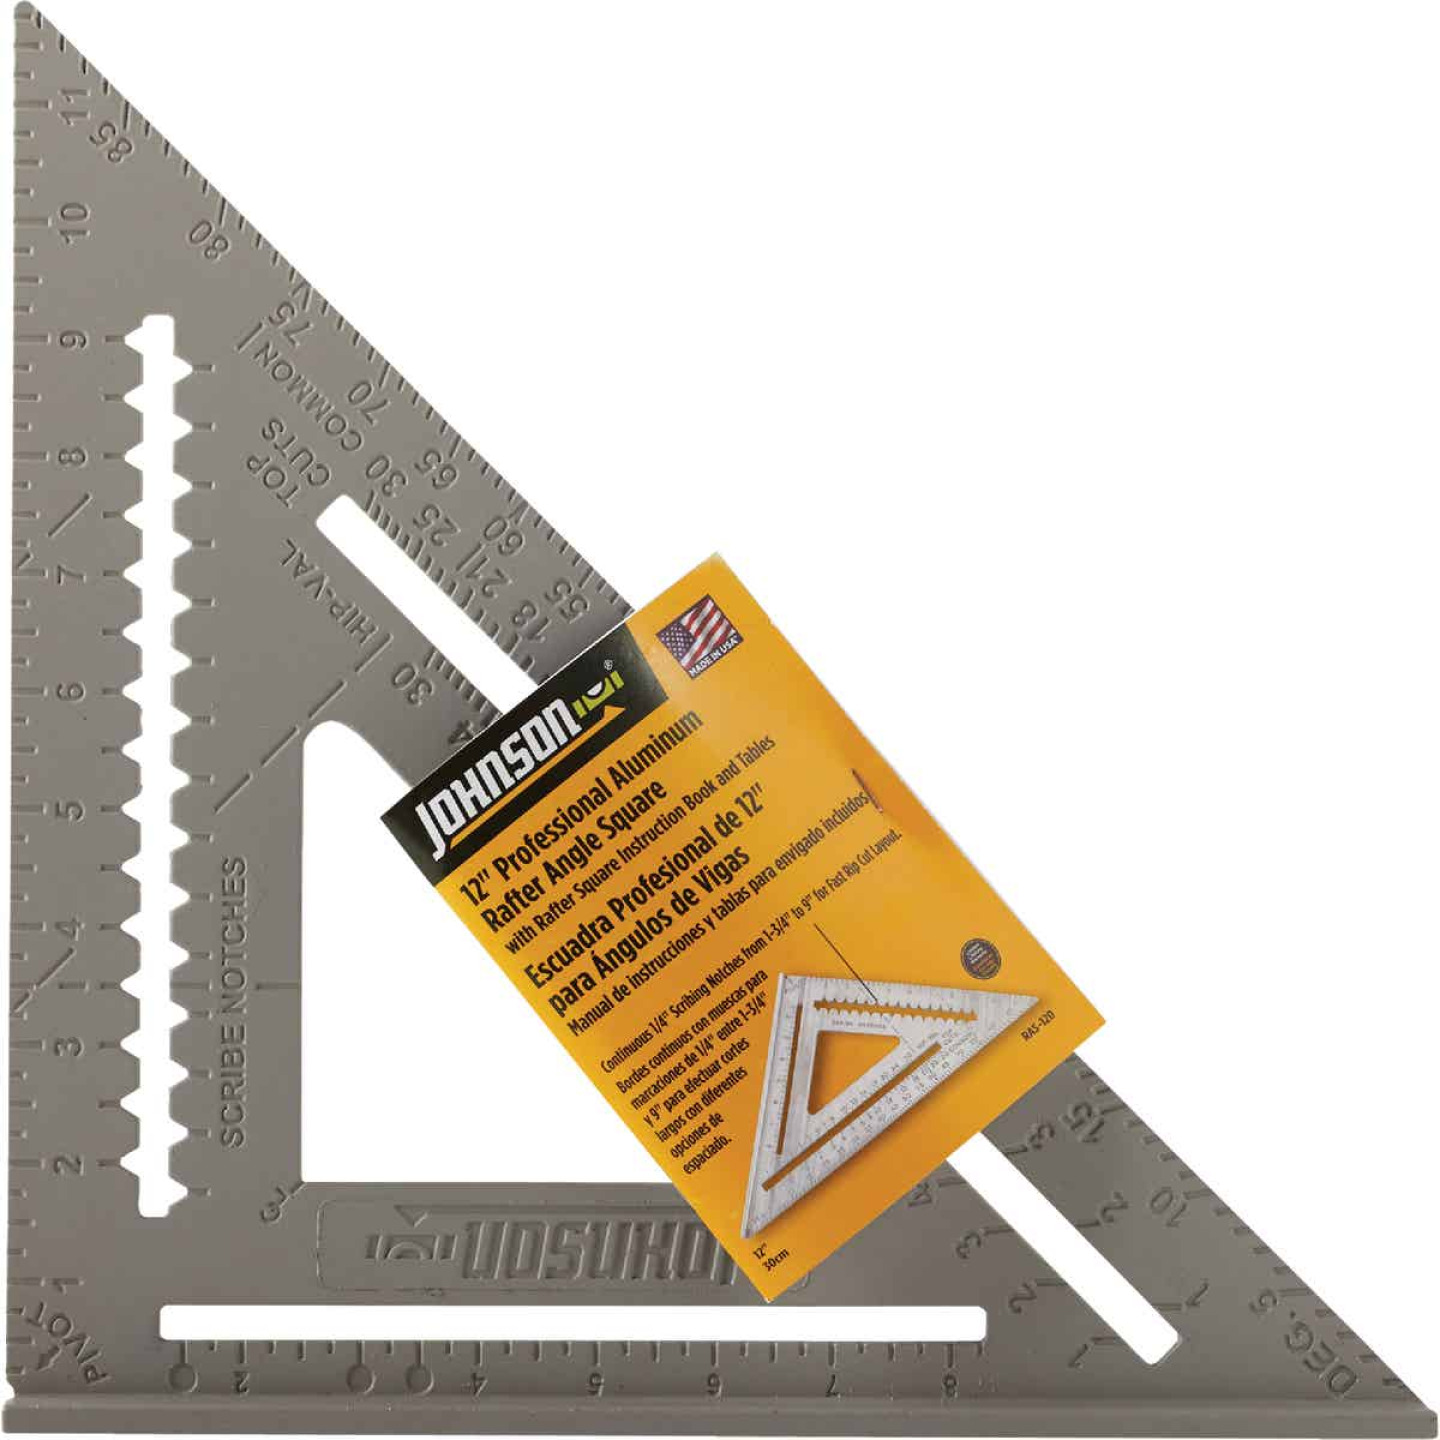 Johnson Level 12 In. Aluminum Rafter Square with Instruction Manual & Rafter Tables Image 2